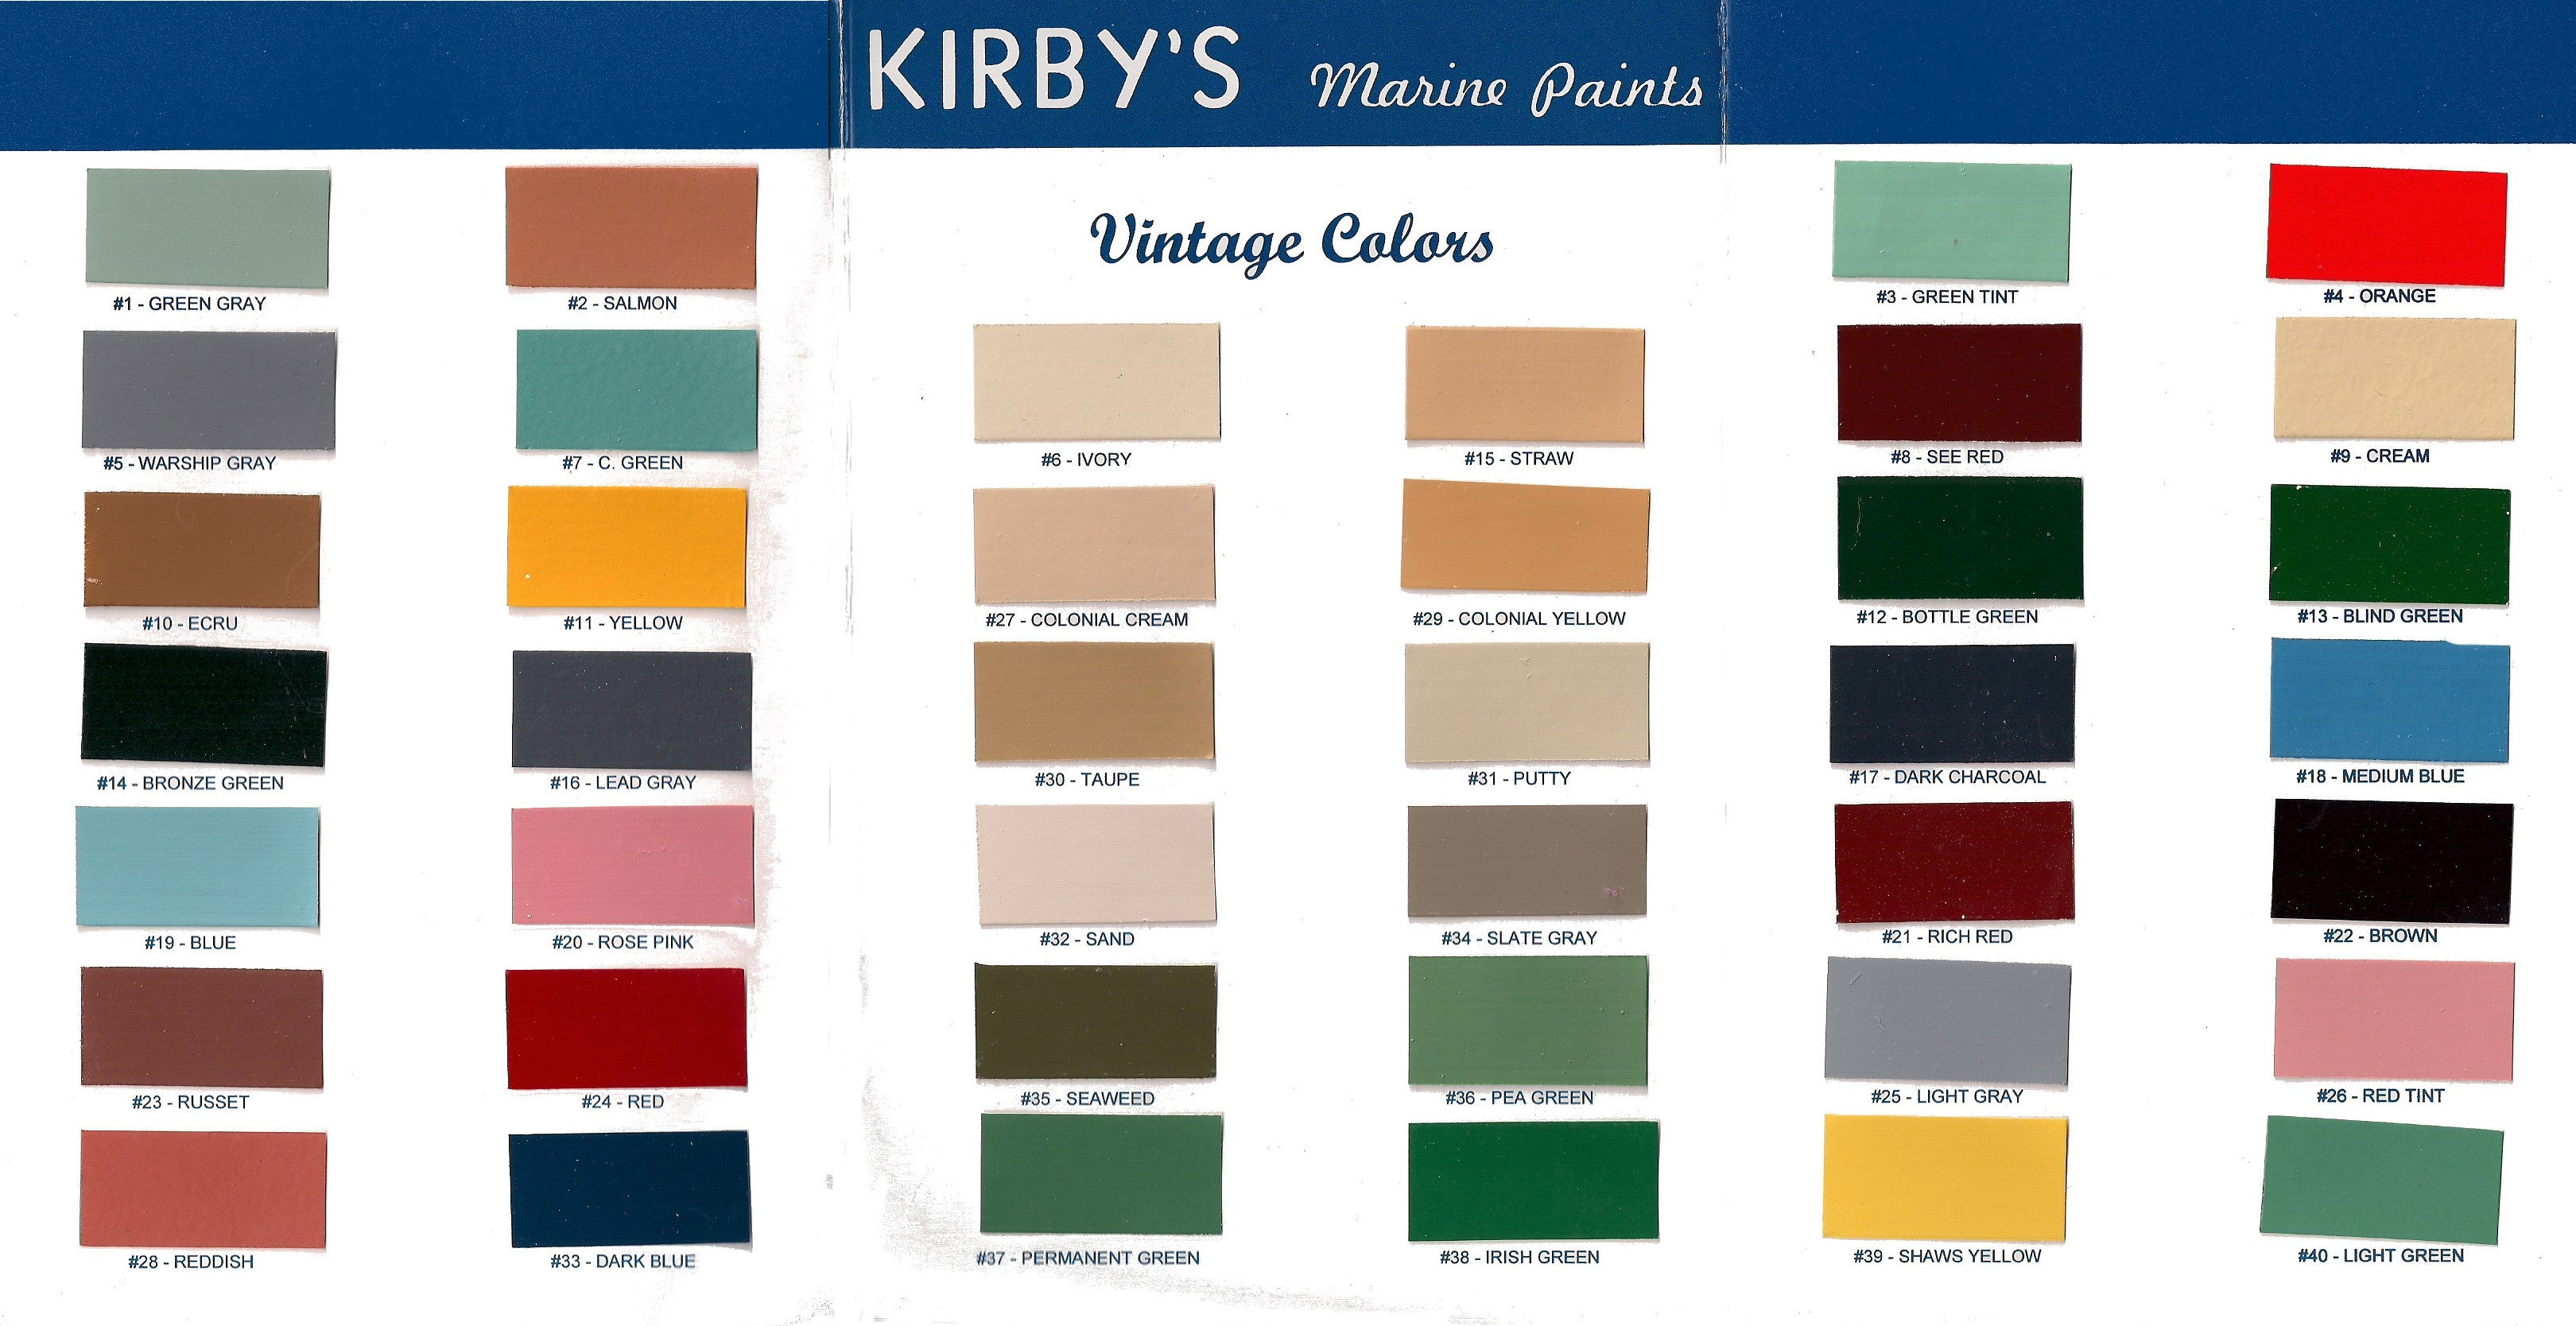 Kirbys vintage color chart george kirby jr paint company kirbys vintage color chart geenschuldenfo Gallery